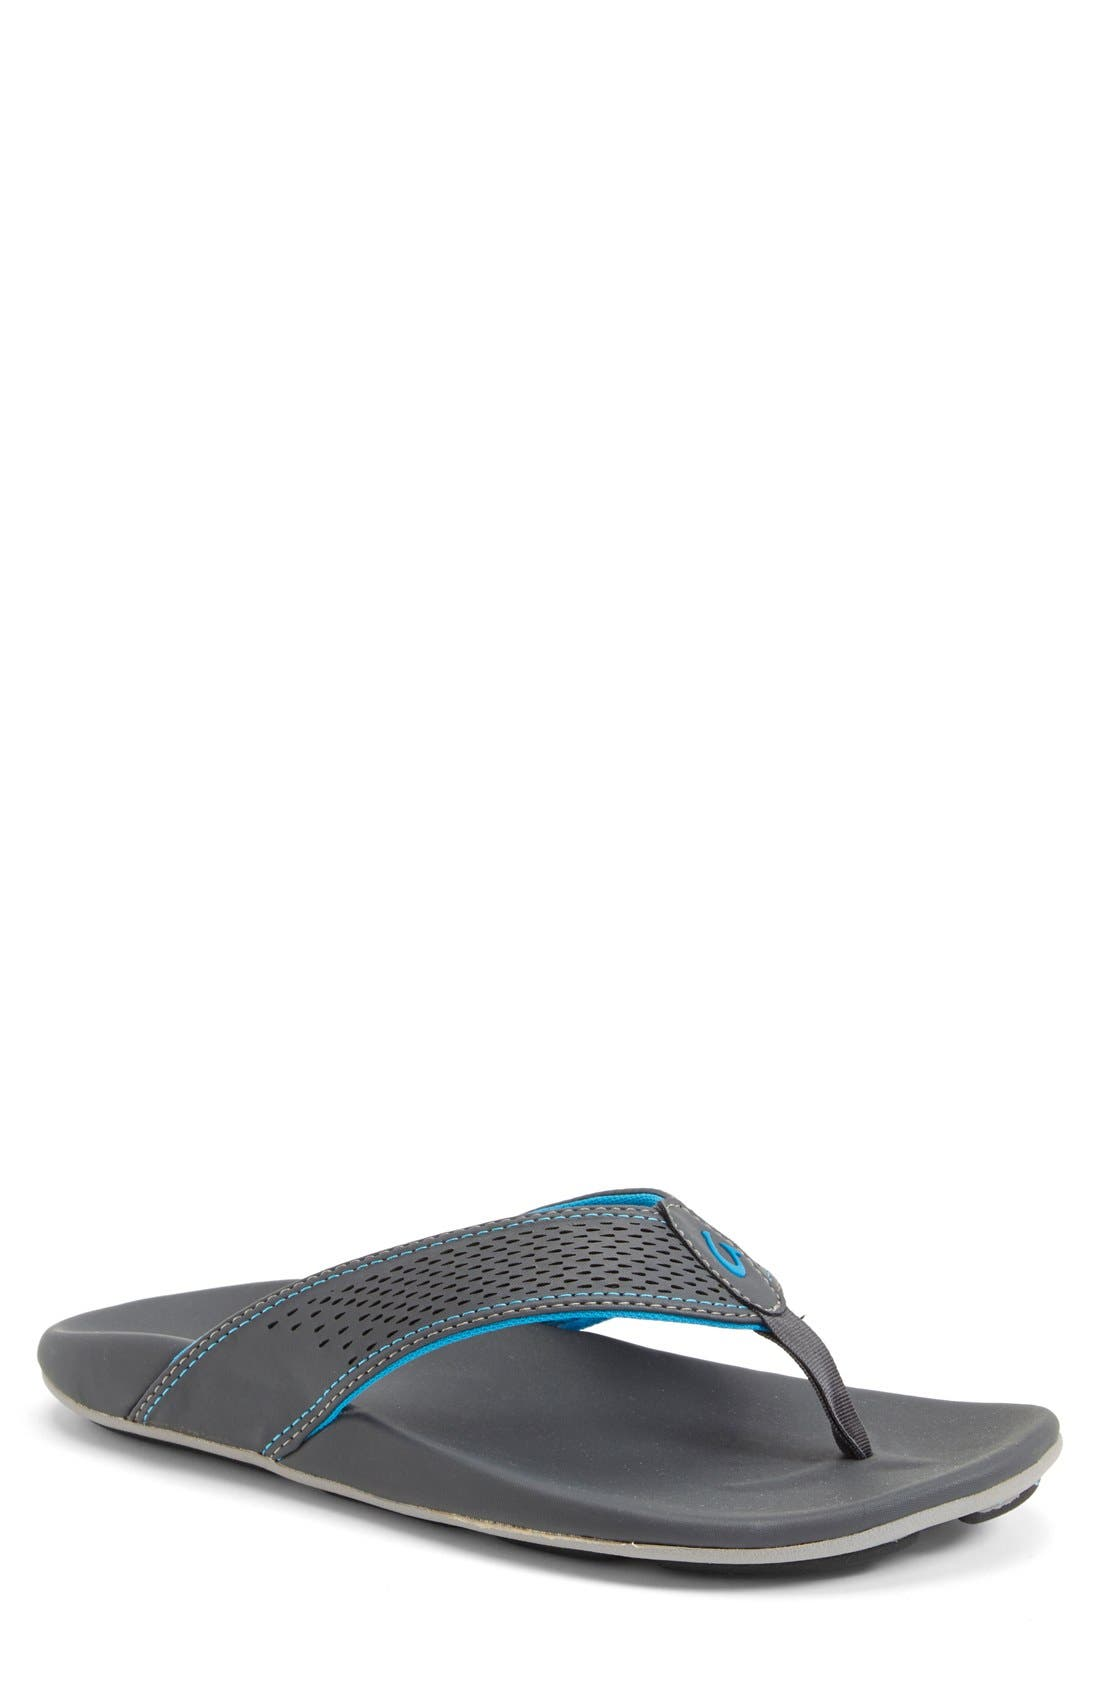 OLUKAI 'Kekoa' Water Resistant Perforated Flip Flop